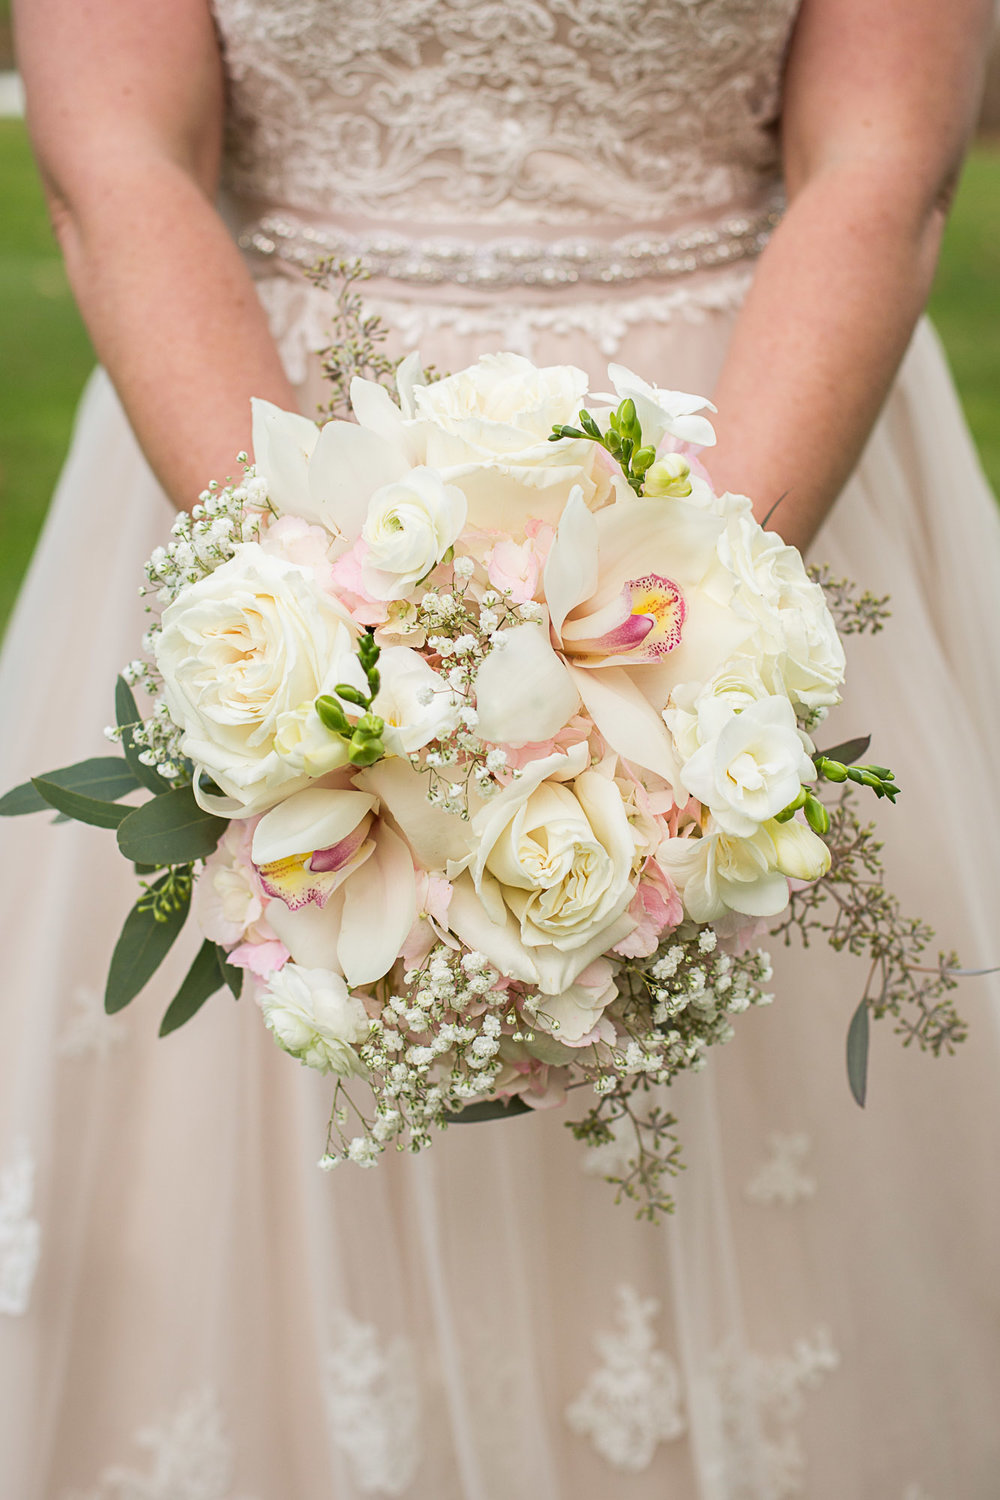 Love the touches of Baby's Breath (and Caitlin's wedding at The Barns at Wesleyan Hills!). In this pave style bouquet: Pink Hydrangea, White Polo Roses, Baby's Breath, White Cymbidium Orchids, White Ranunculus, White Freesia, Seeded Eucalyptus.